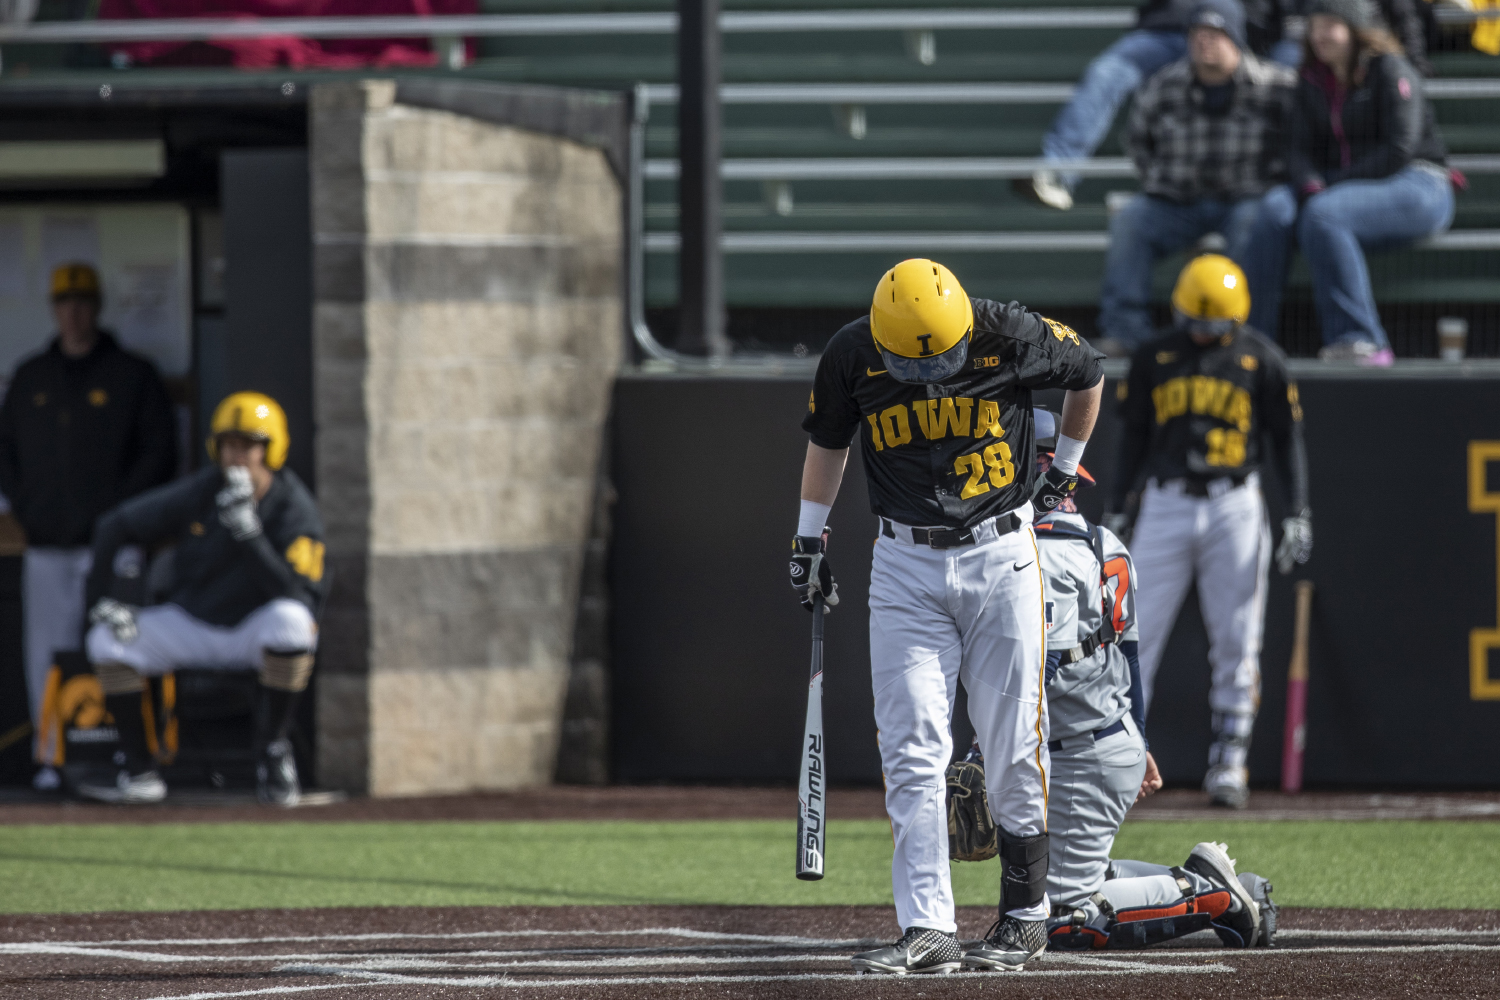 Hawkeye batter Chris Whelan prepares to bat during the baseball game against Illinois at Duane Banks Field on March 30, 2019. The Hawkeyes defeated the Fighting Illini 2-1 after the 9th inning.(Ryan Adams/The Daily Iowan)